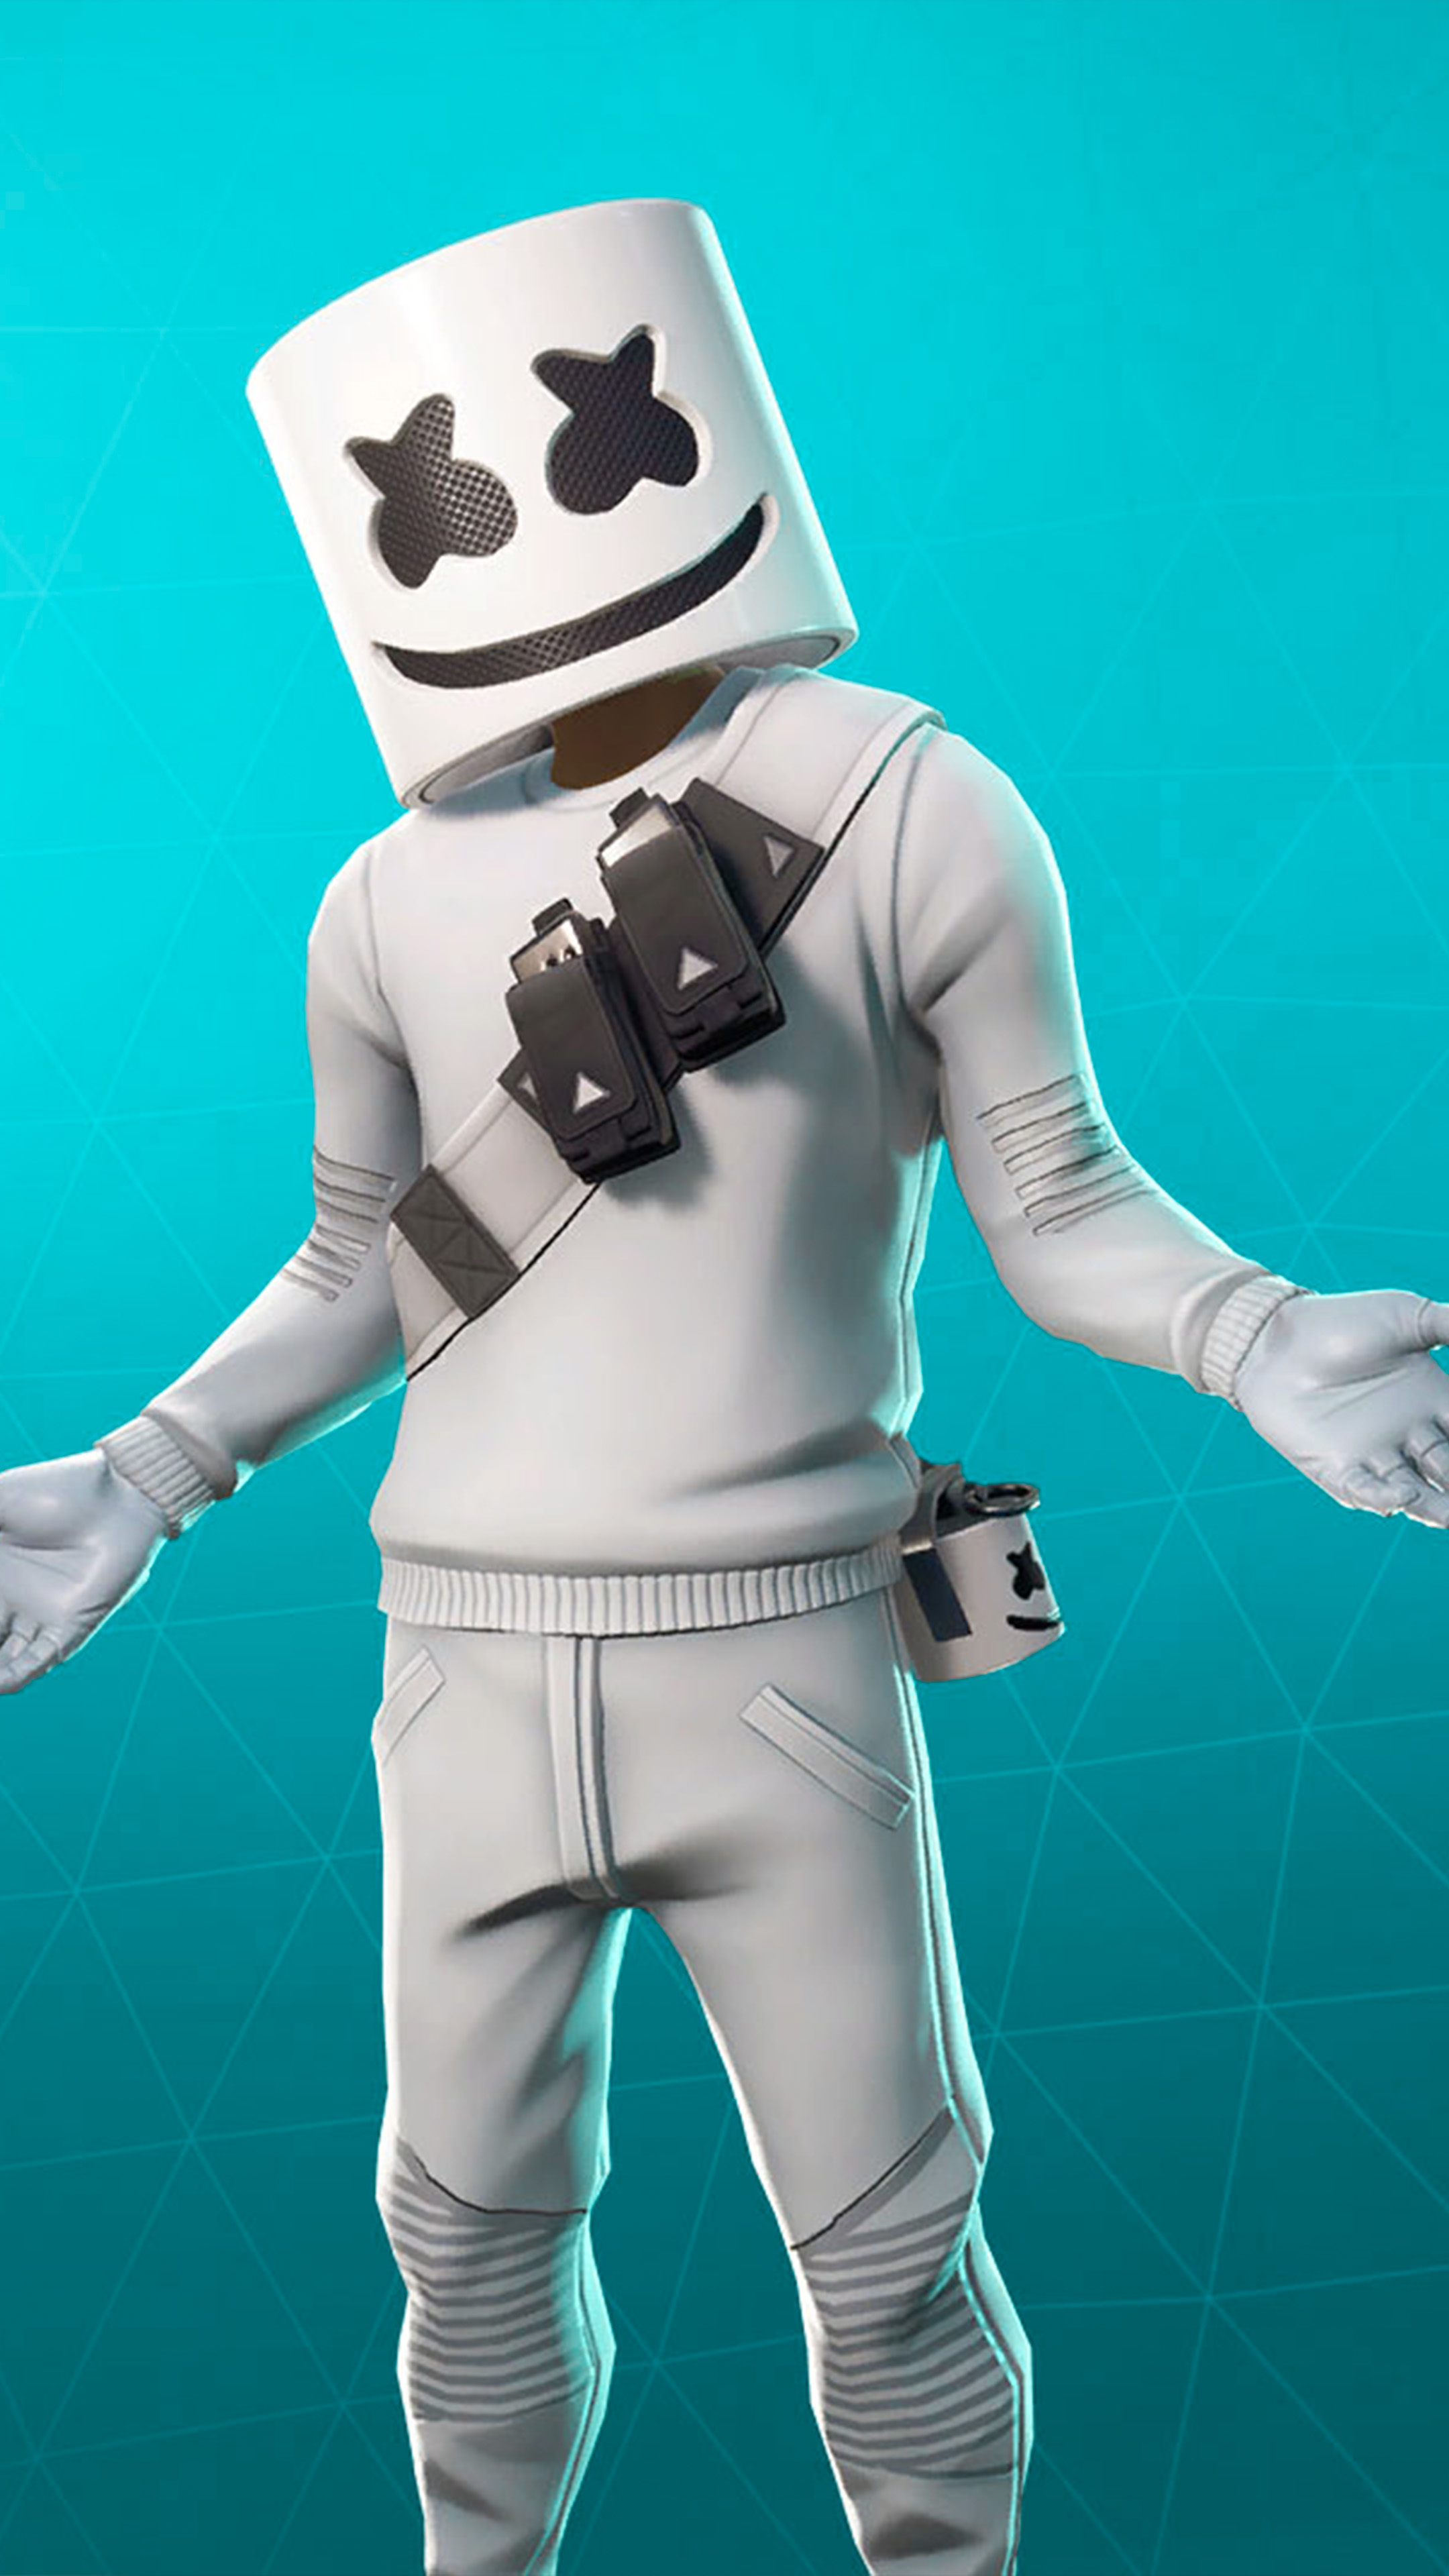 Free Download Download Marshmello Fortnite Skin Pure 4k Ultra Hd Mobile 2160x3840 For Your Desktop Mobile Tablet Explore 44 Share The Love Fortnite Wallpapers Share The Love Fortnite Wallpapers